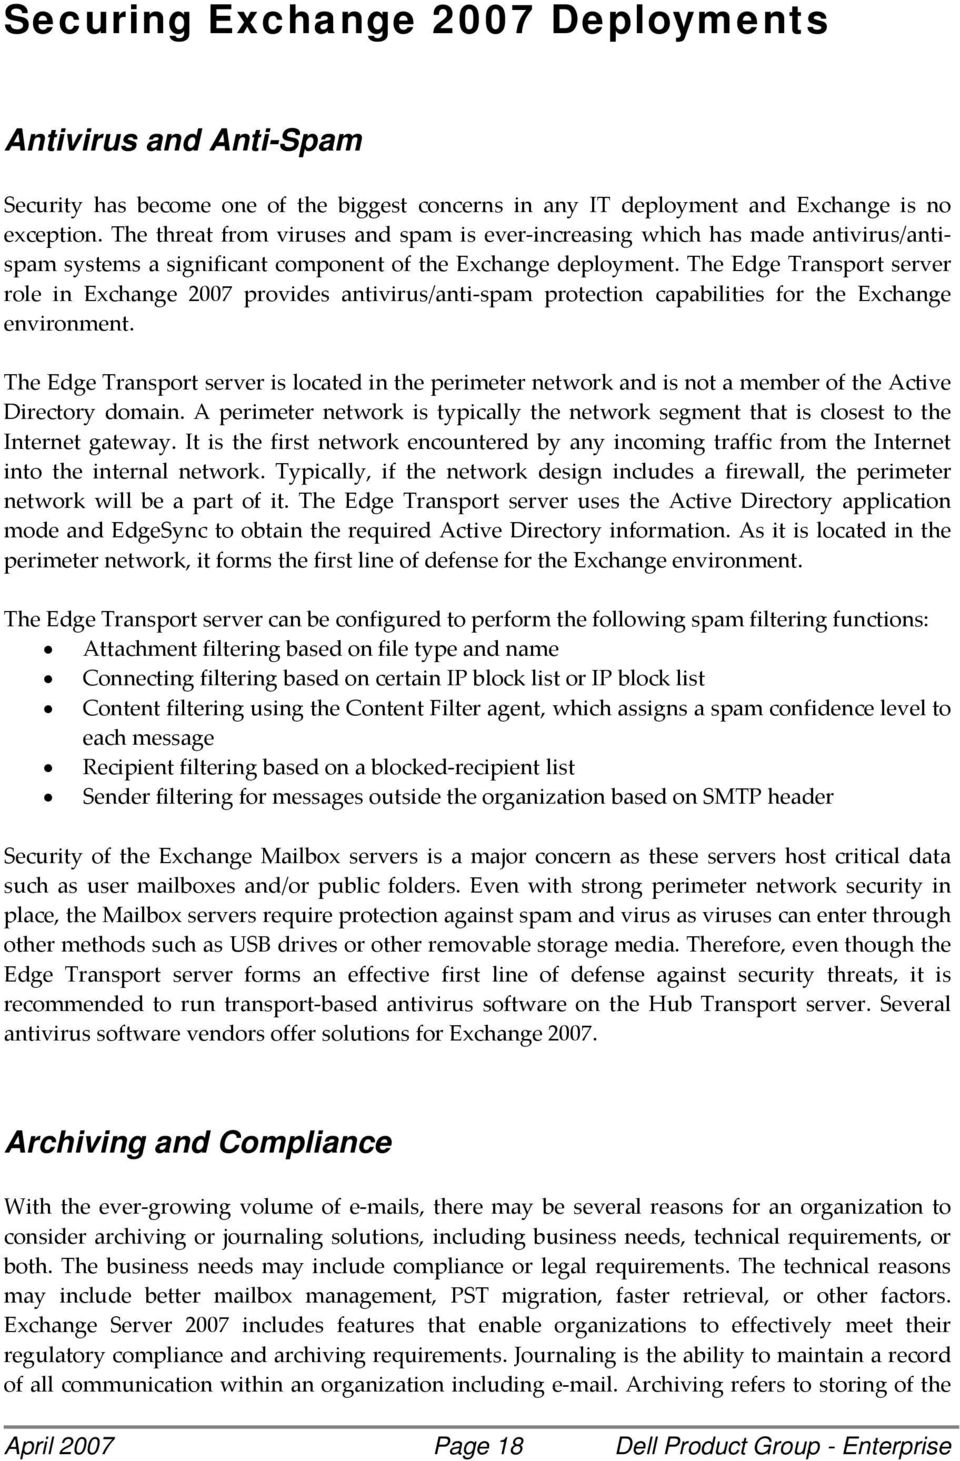 The Edge Transport server role in Exchange 2007 provides antivirus/anti spam protection capabilities for the Exchange environment.